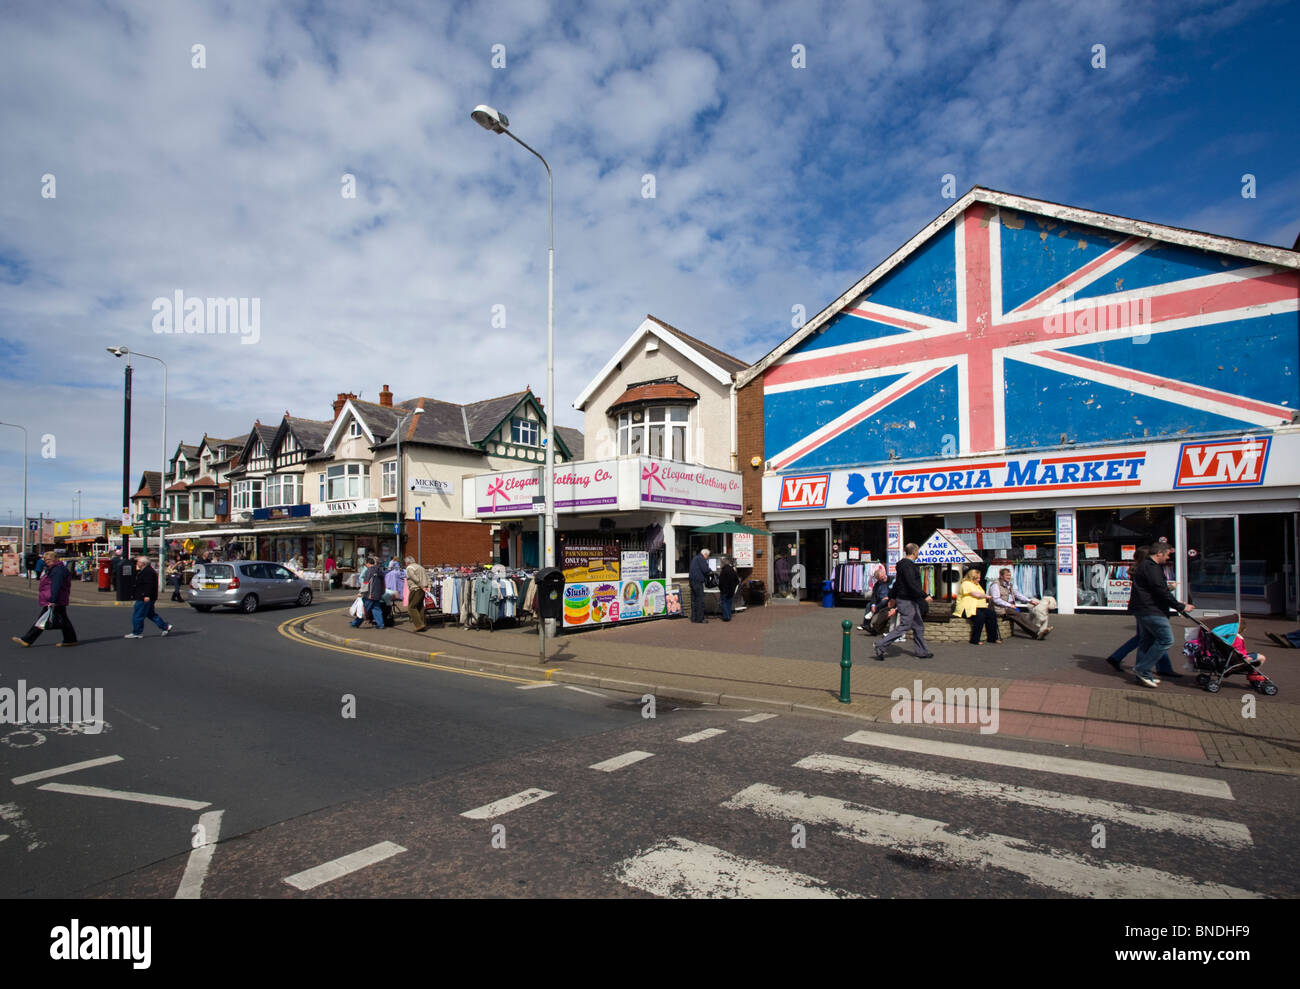 Cleveleys town center and Victoria Market Stock Photo ...